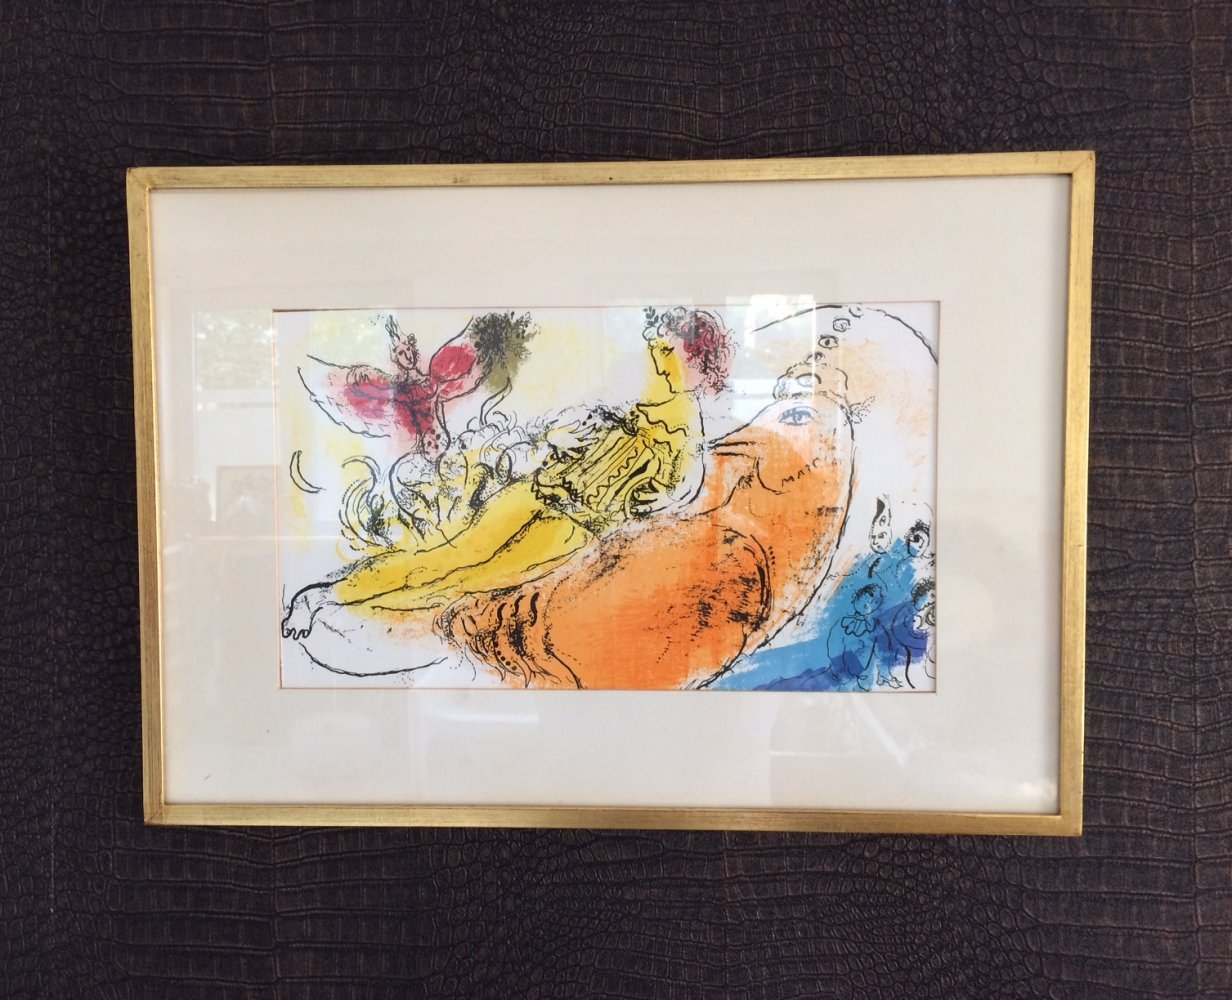 1957 Deluxe Art Lithograph print by Marc Chagall L